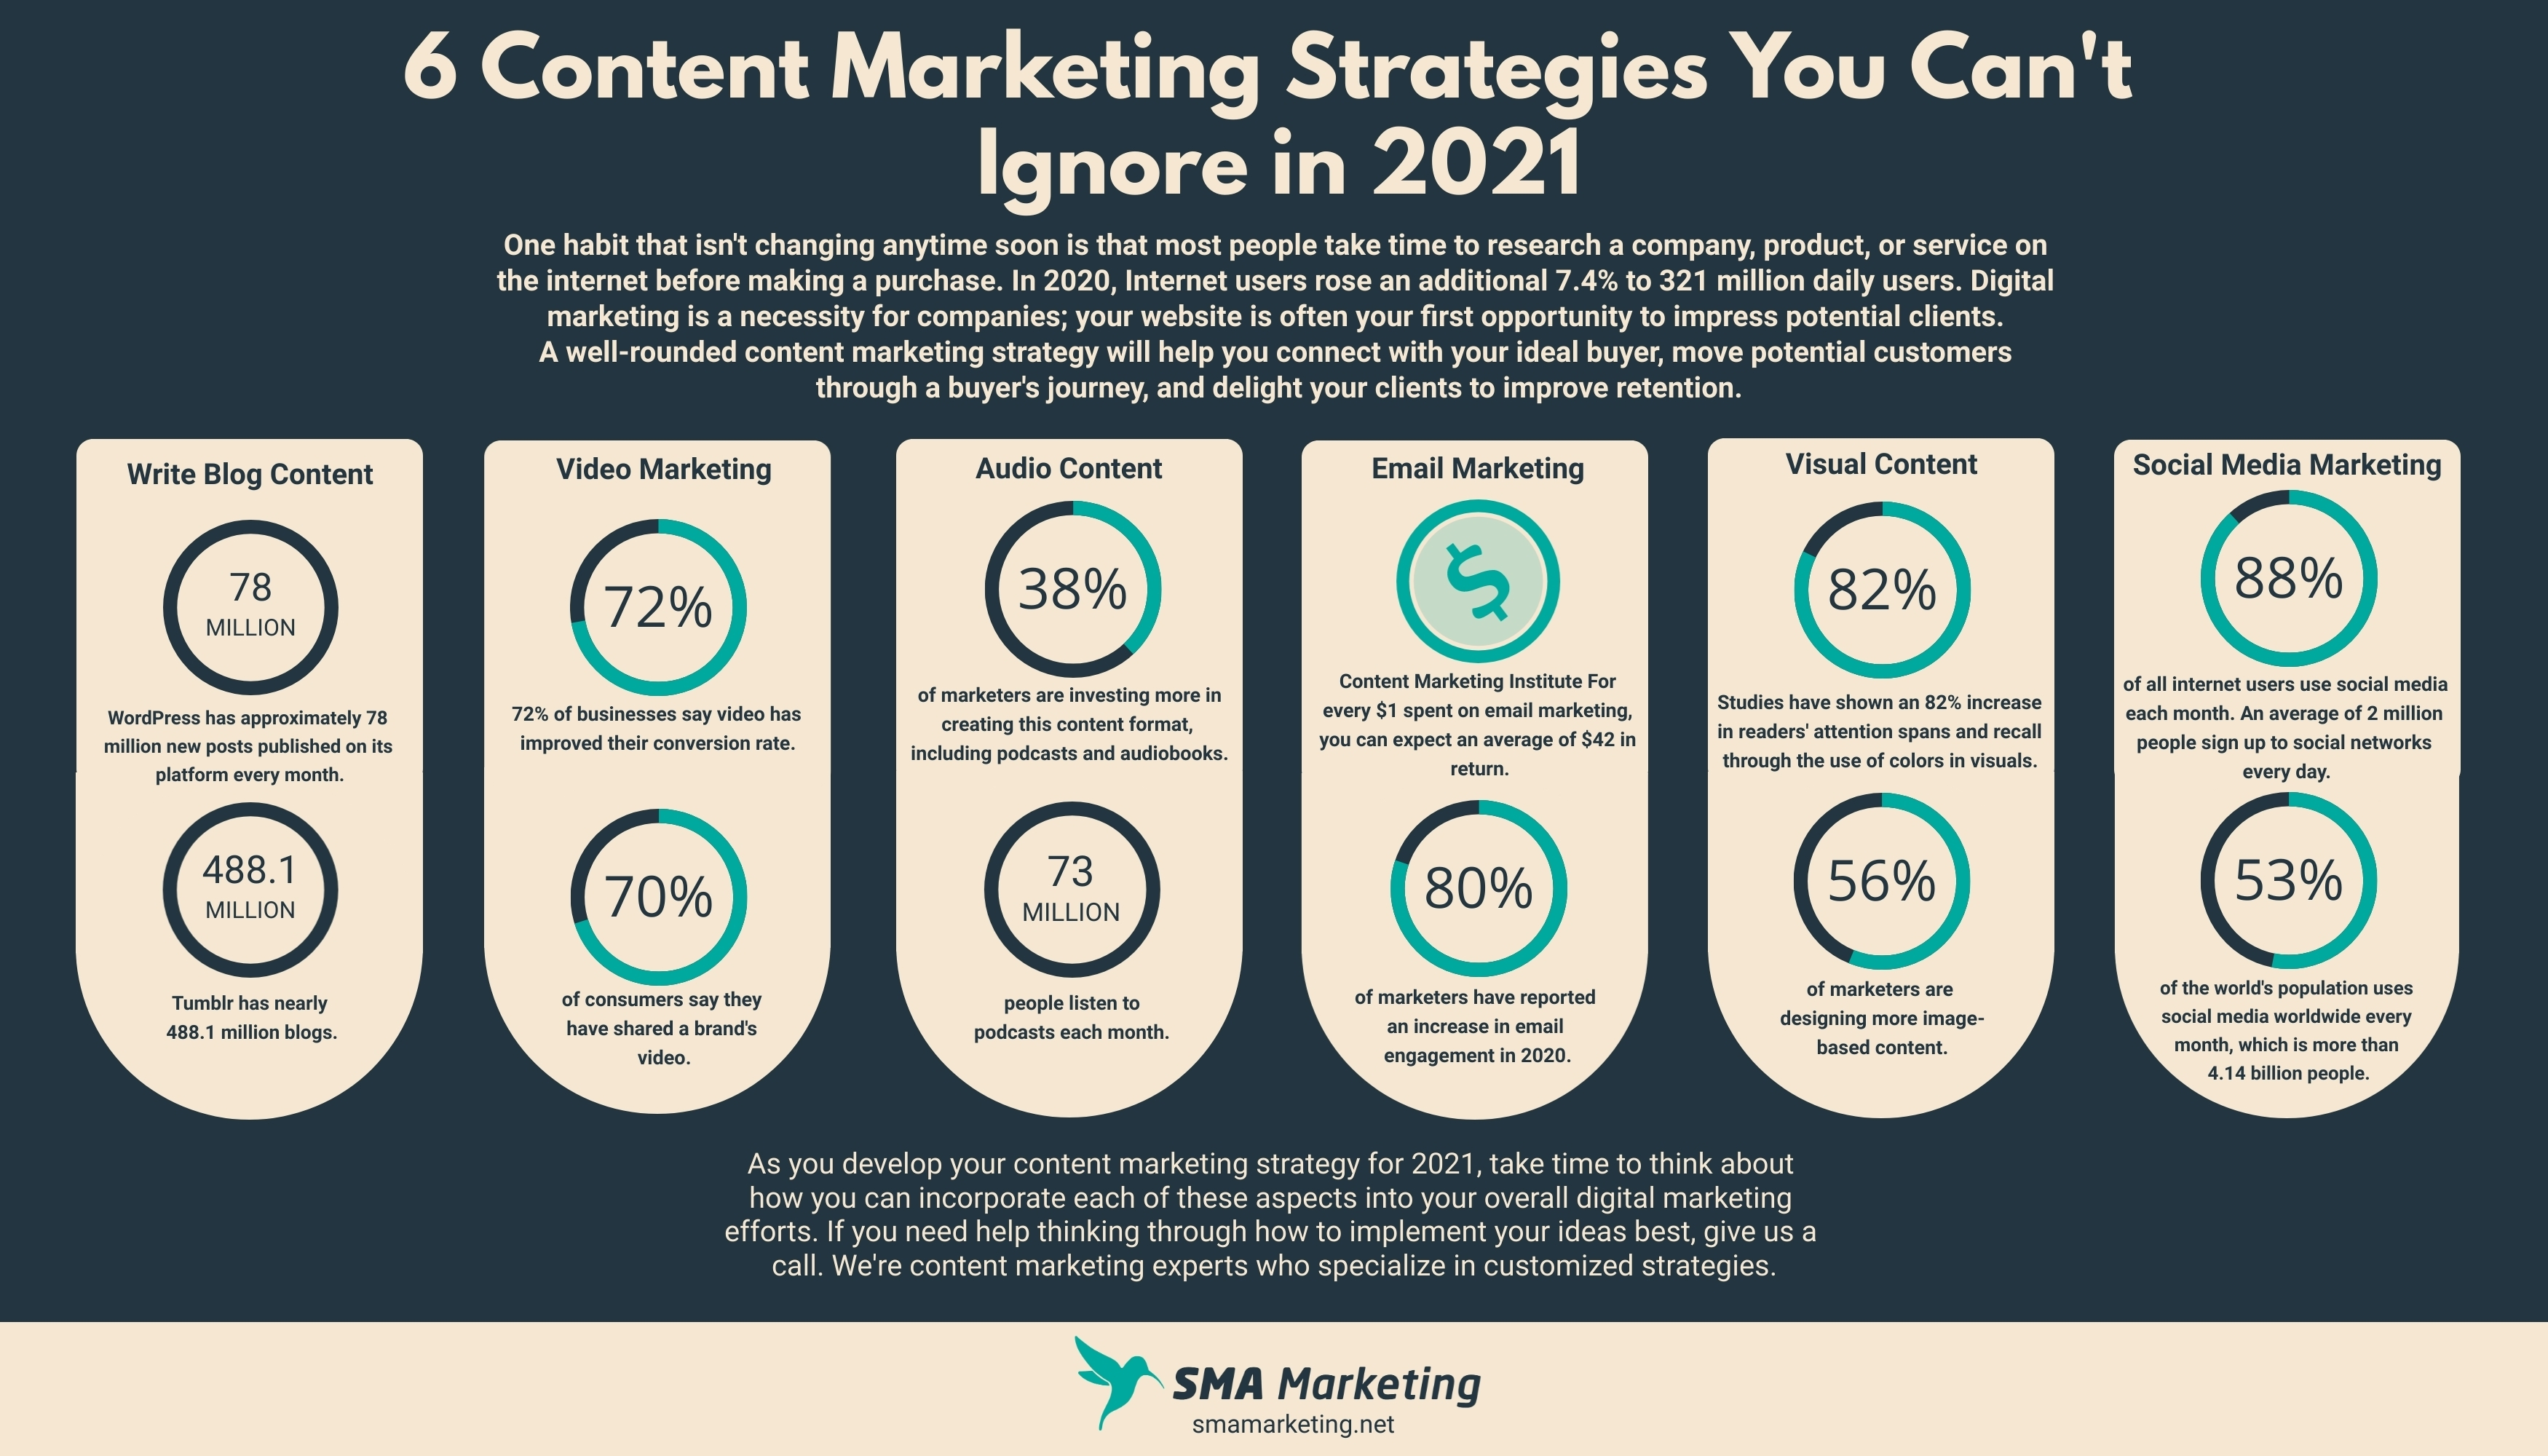 6 Content Marketing Strategies You Cant Ignore in 2021